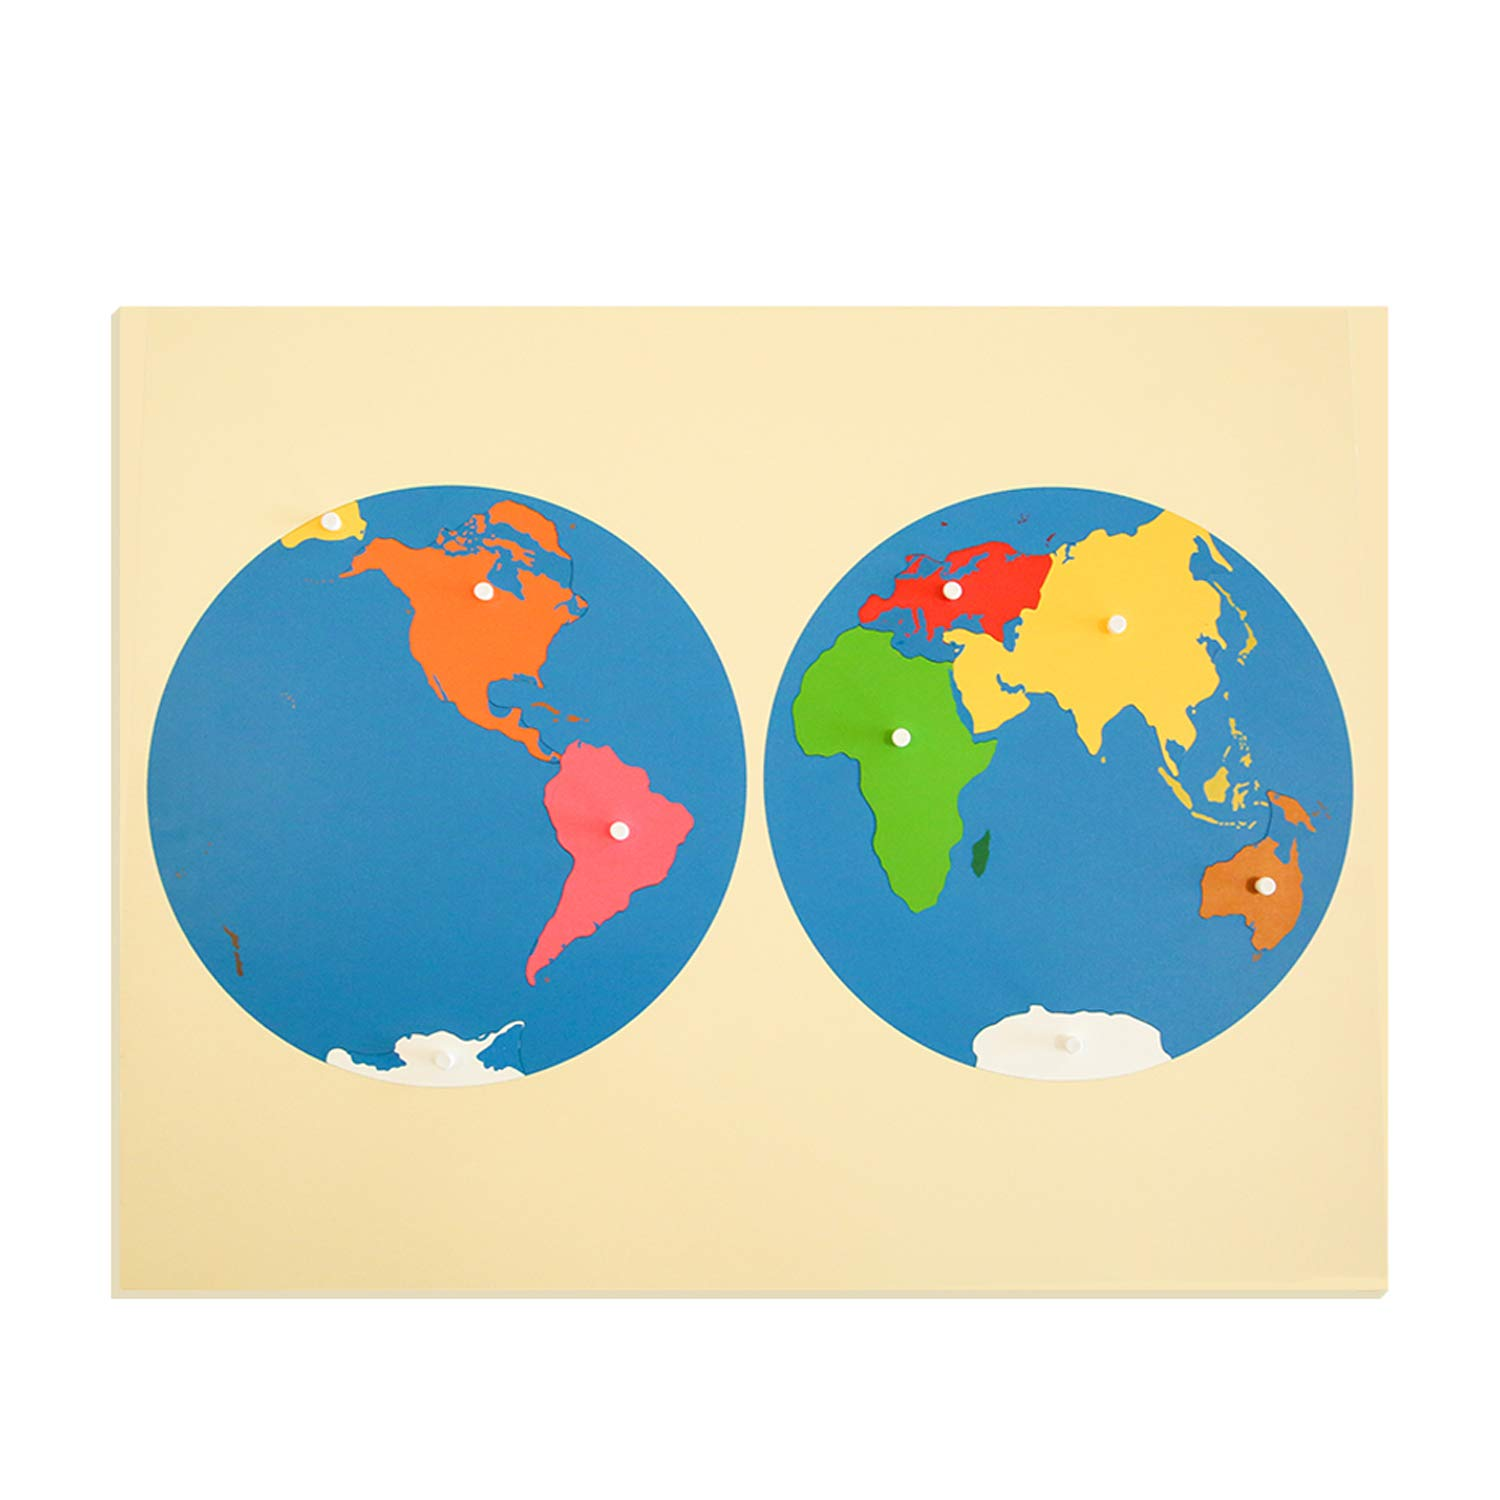 Montessori Materials Puzzle Map of World Part, Wooden Globe Geography Toys for Early Preschool and Homeschool Toddlers and Kids